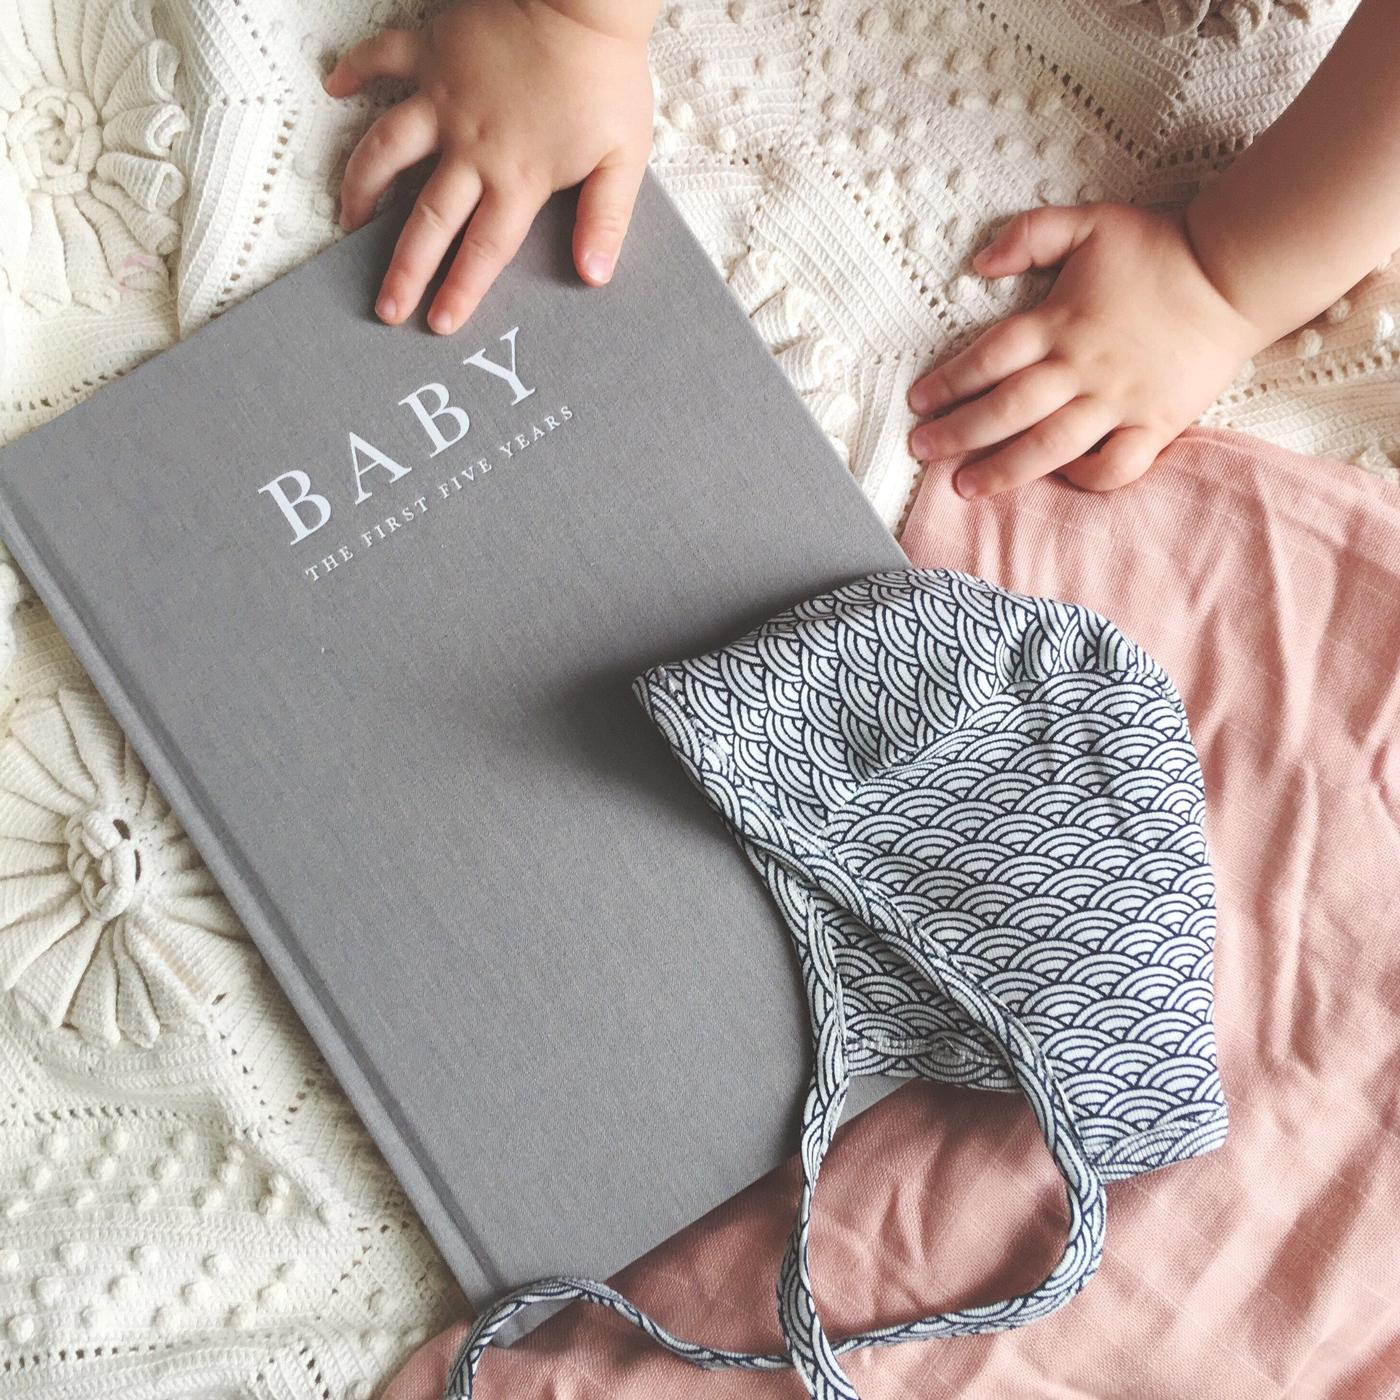 Write to Me - Baby Journal